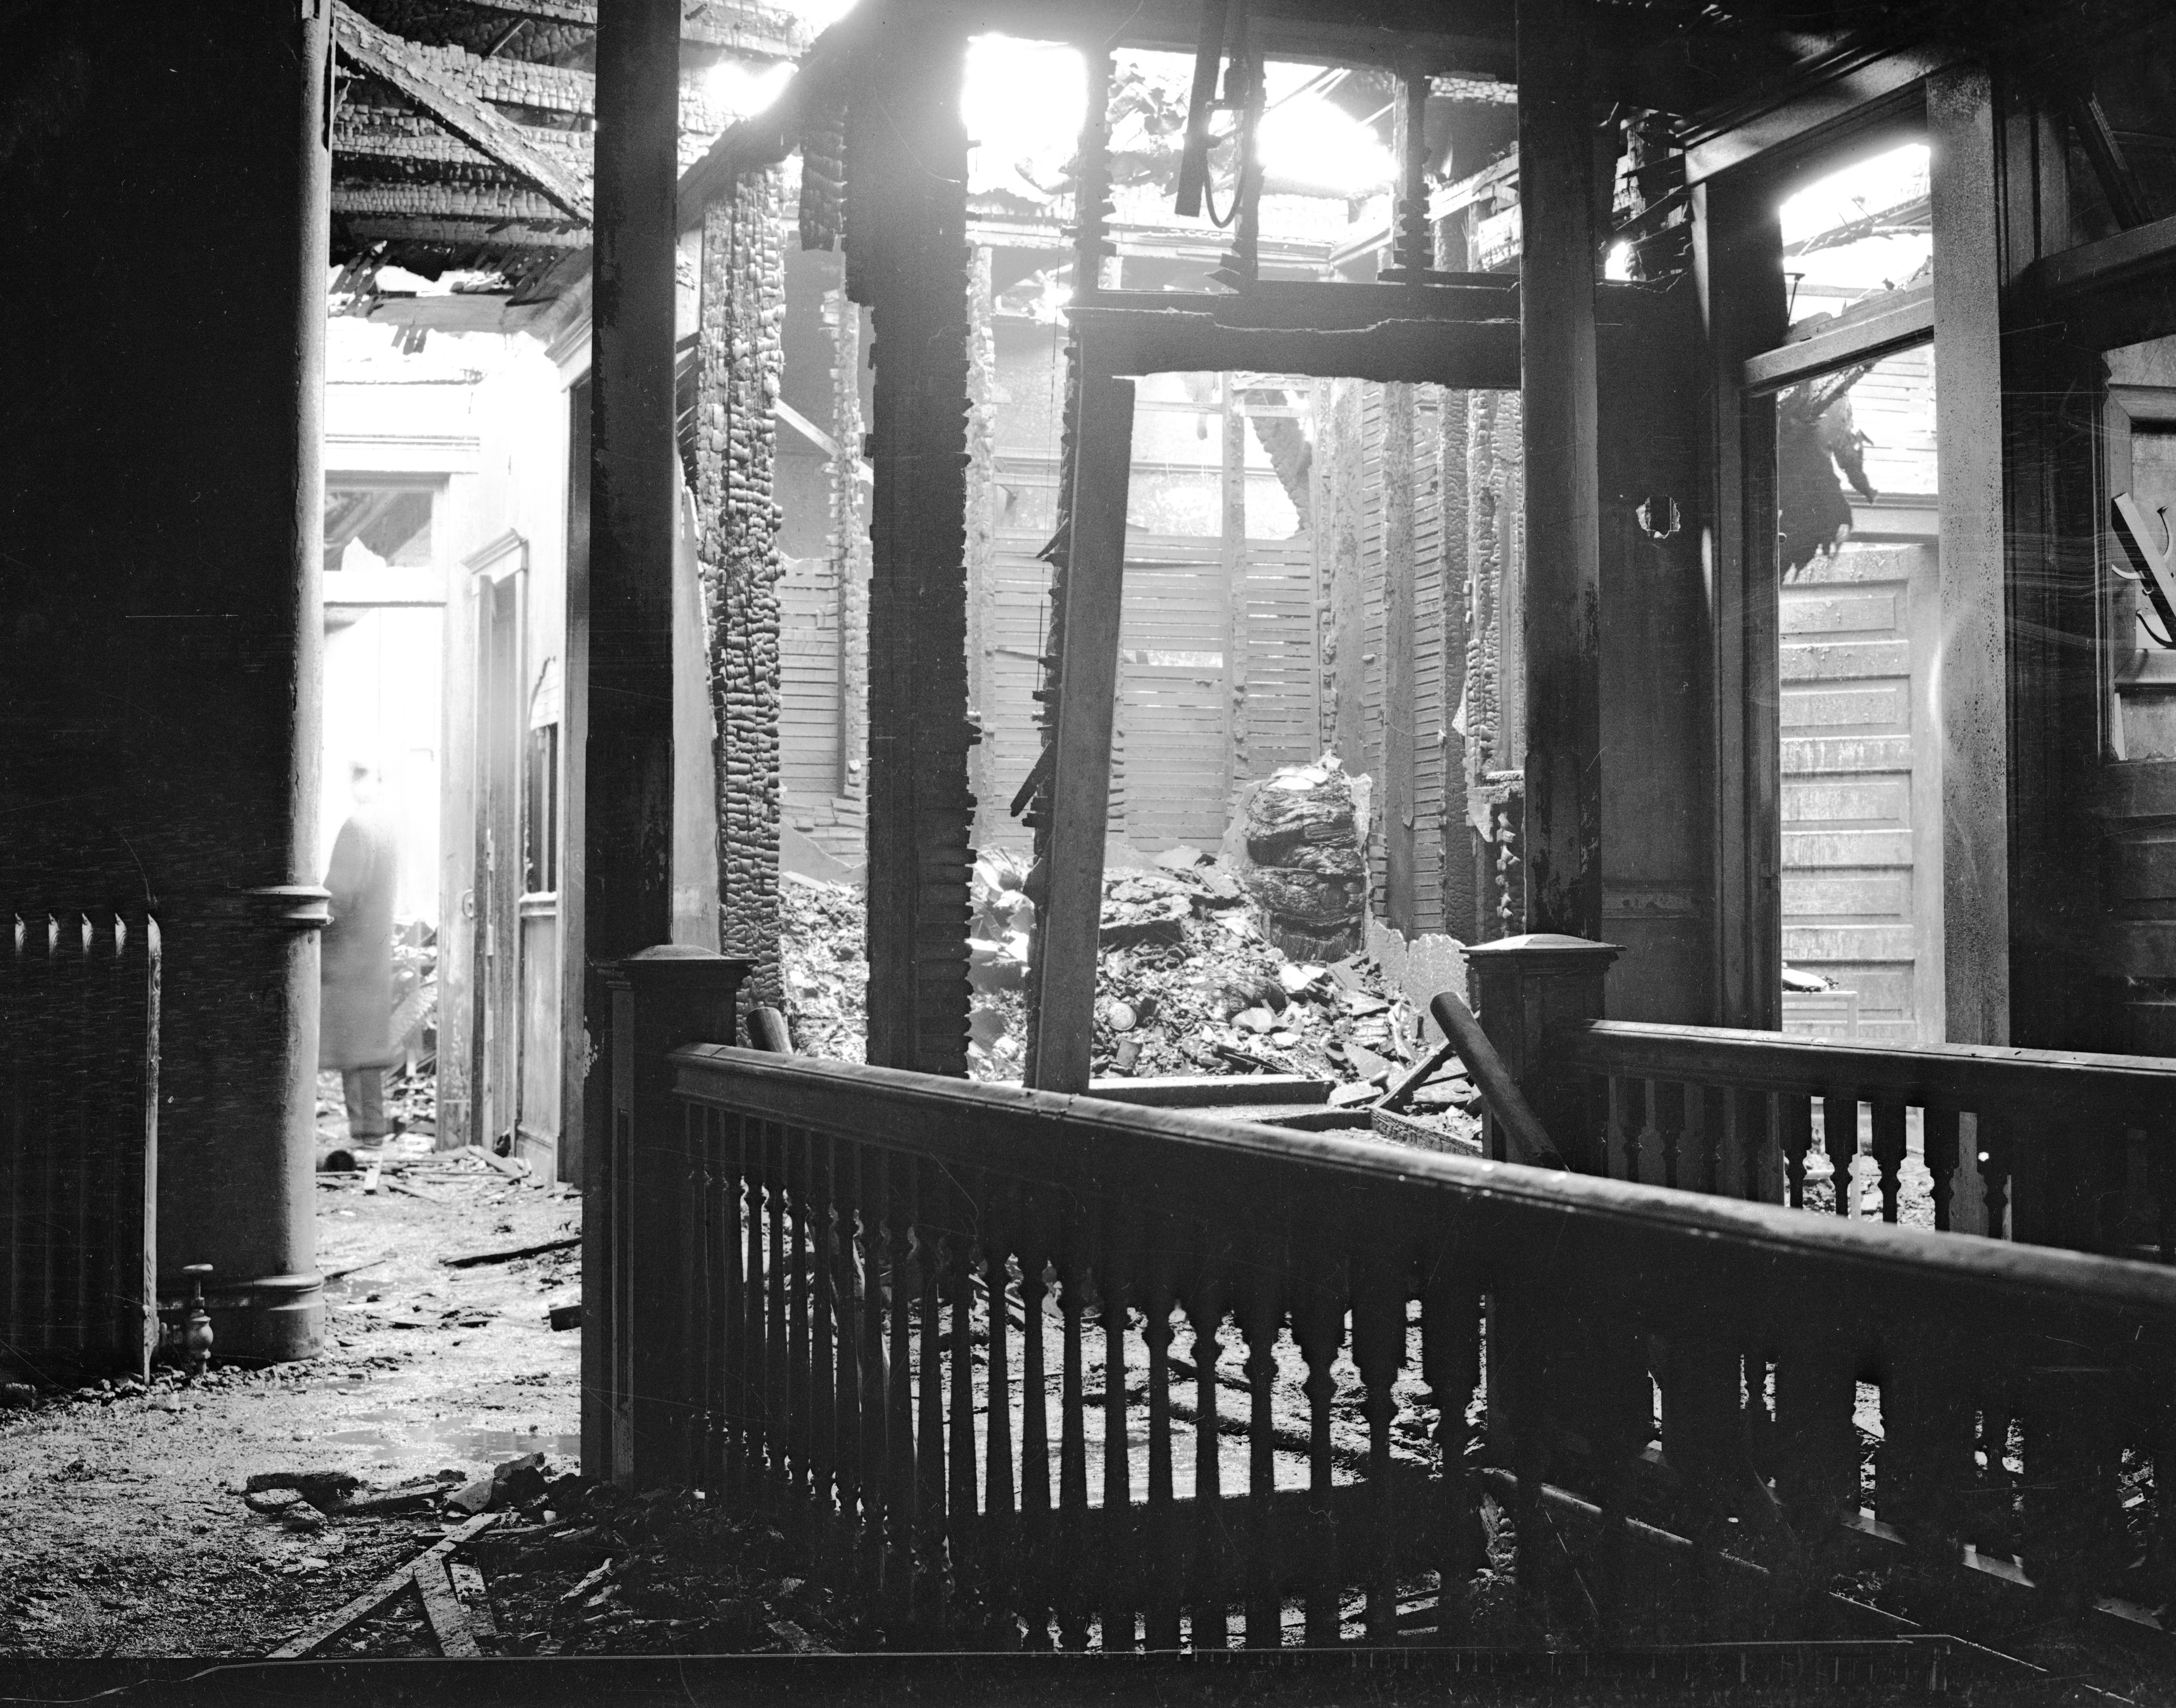 State St. Fire Causes $100,000 Damage, January 1936 image